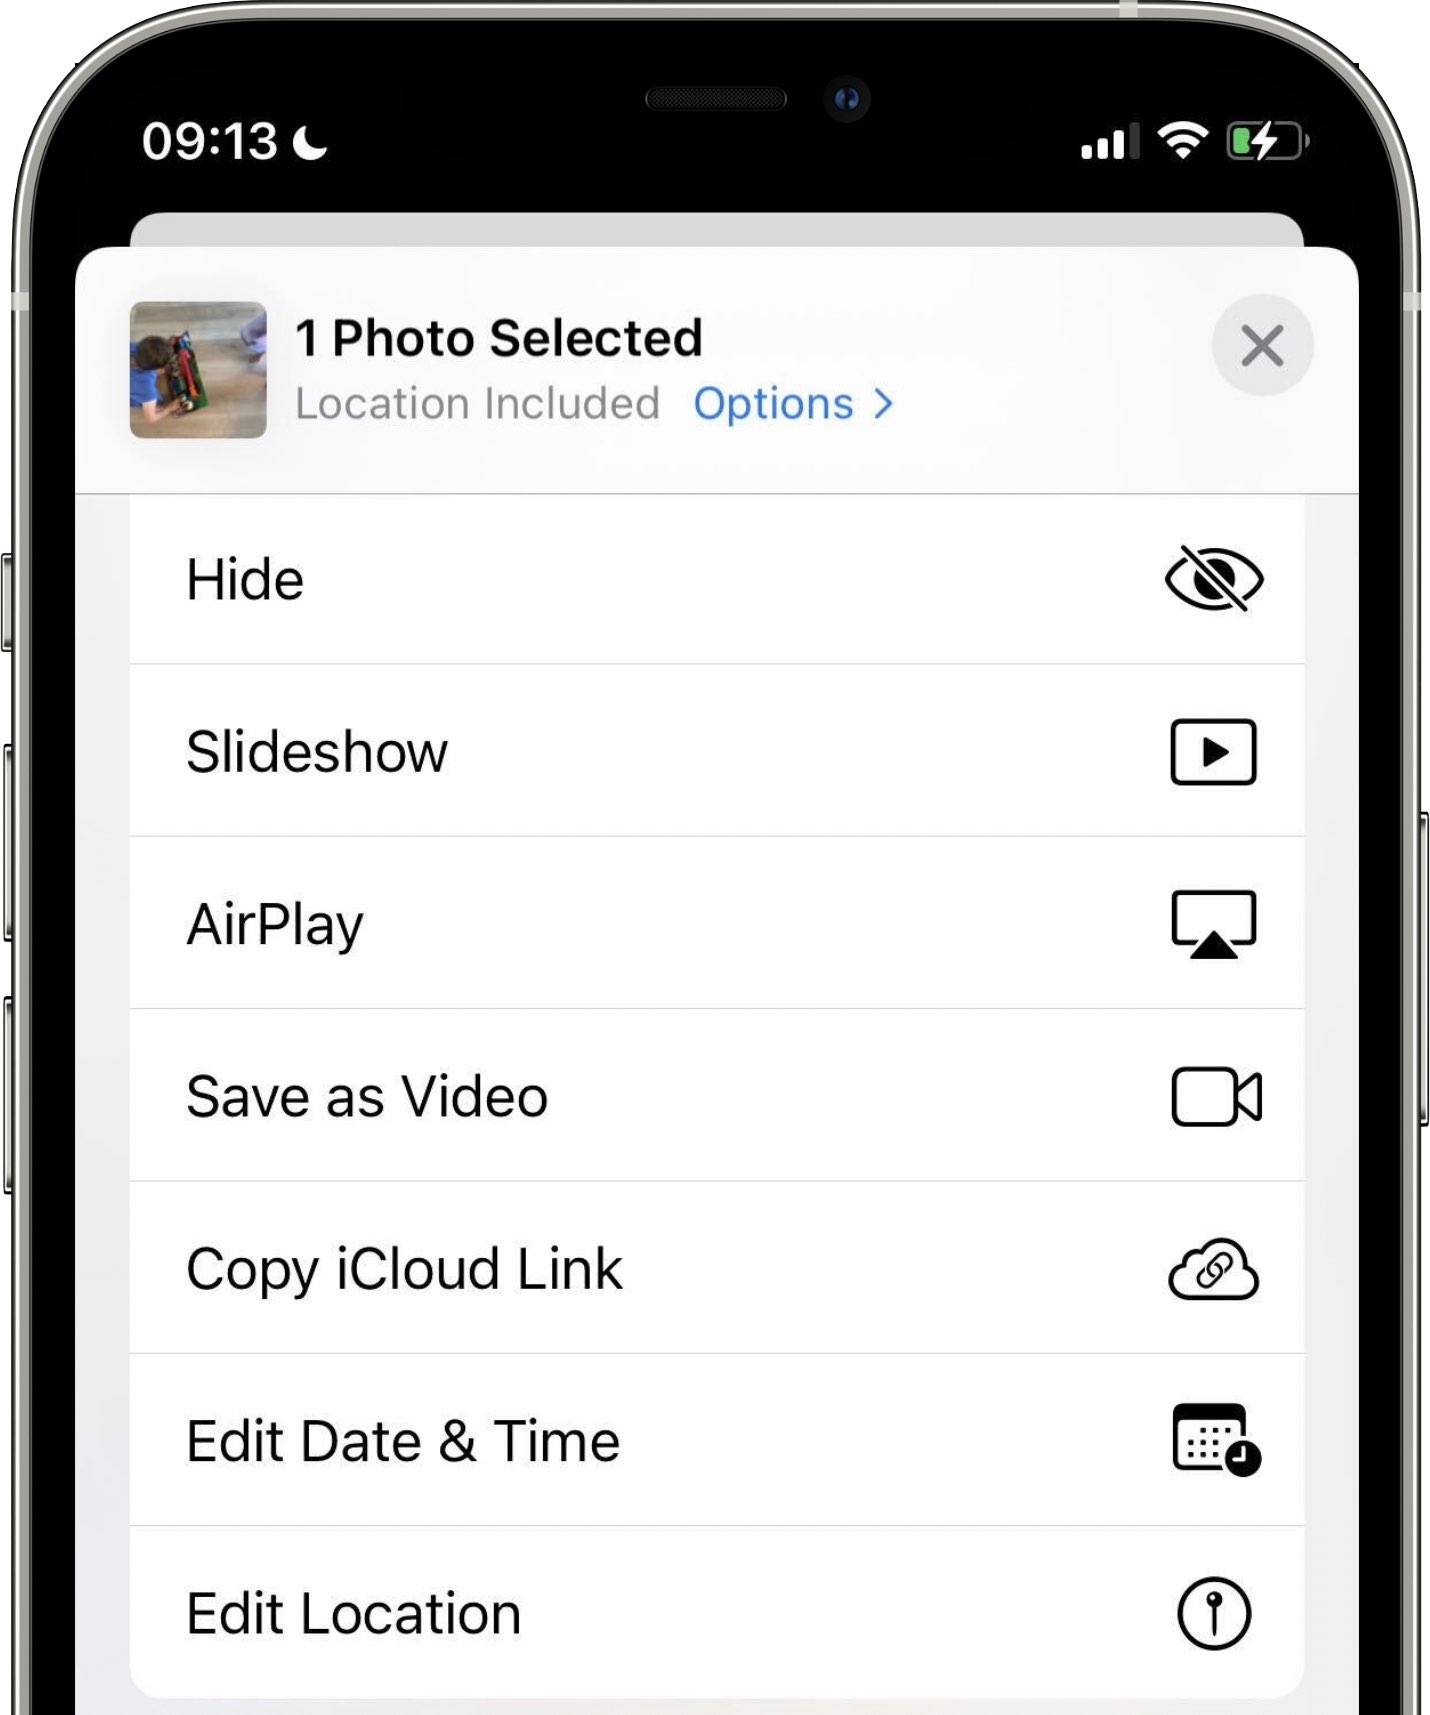 An iPhone screenshot of Apple Photos in iOS 15 with the Share menu listing options to edit EXIF metadata